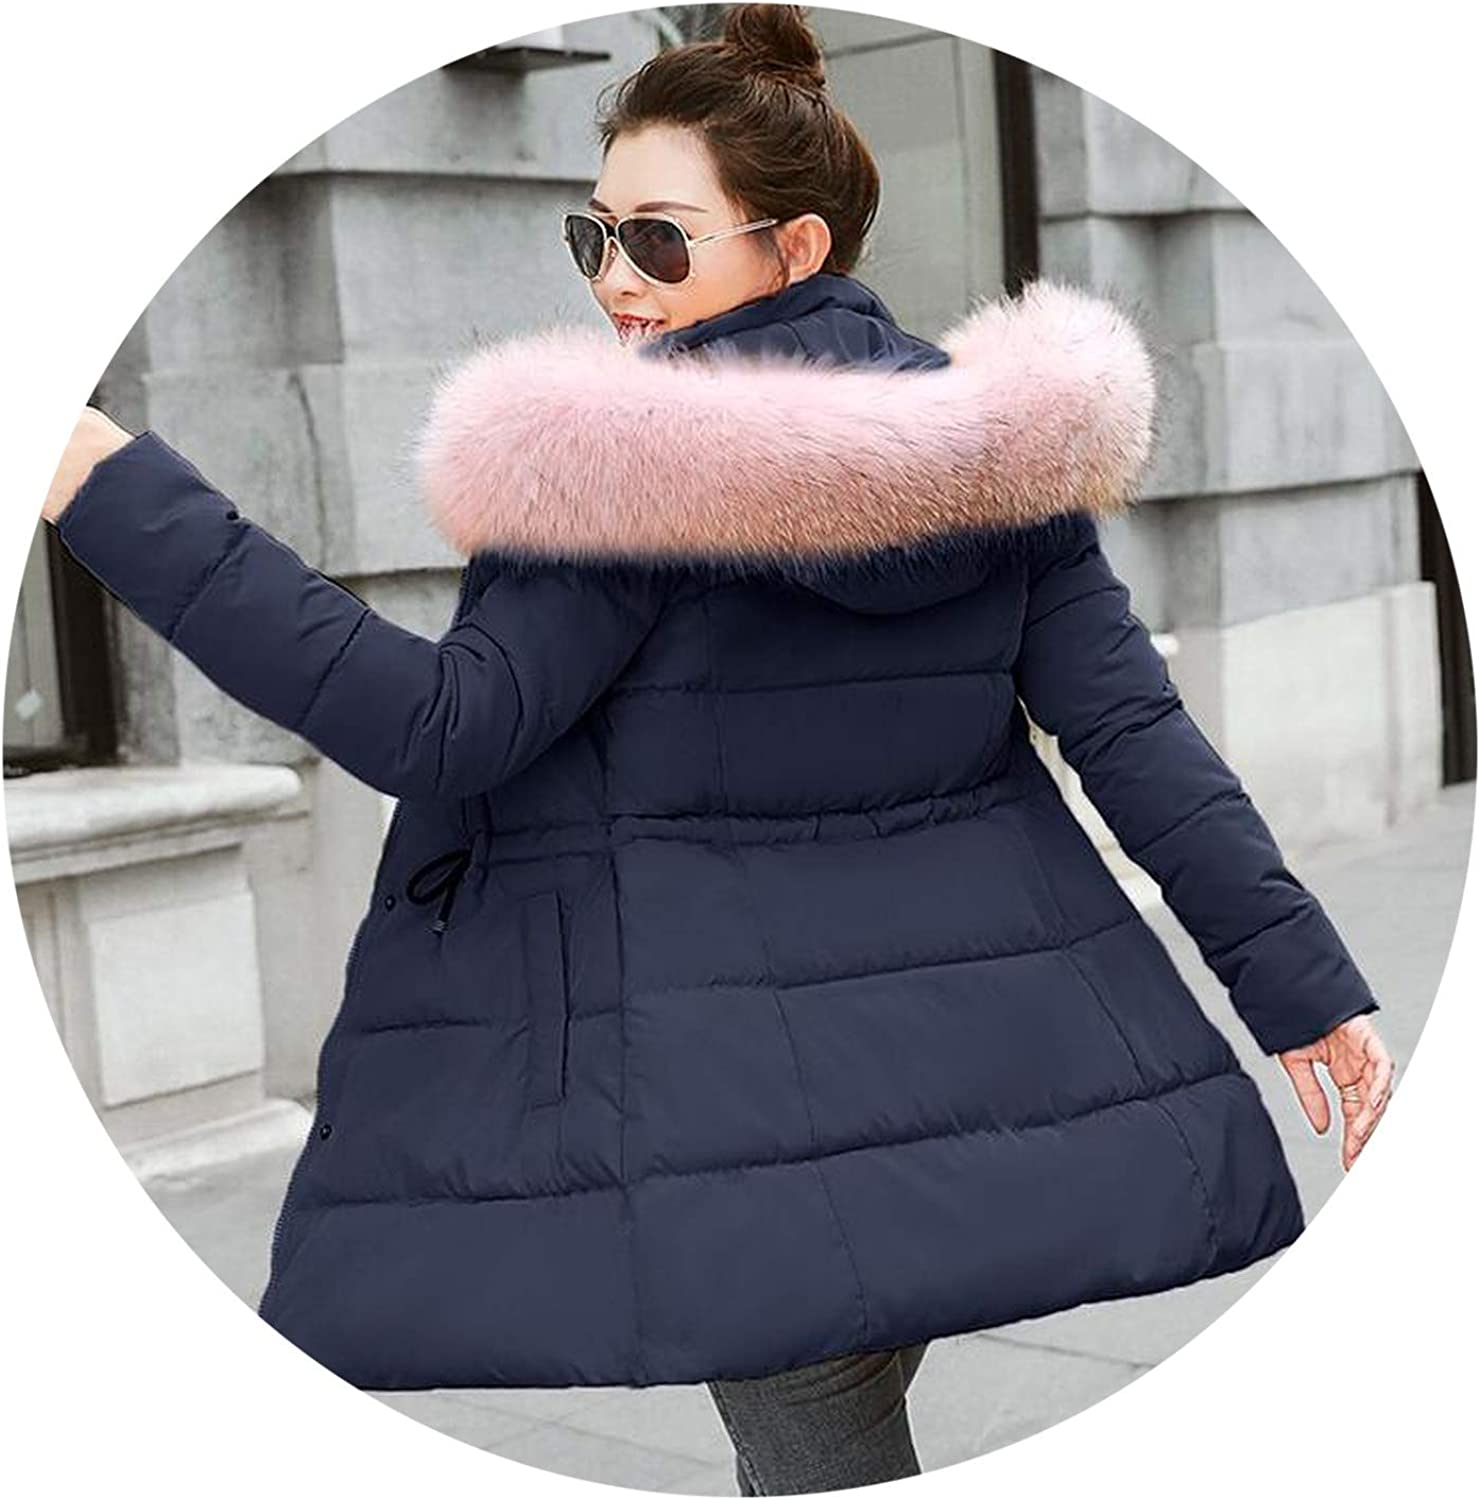 MTStyle Winter Jacket Coats Artificial Raccoon Hair Collar Female Parka Cotton Padded Lining S3Xxxl